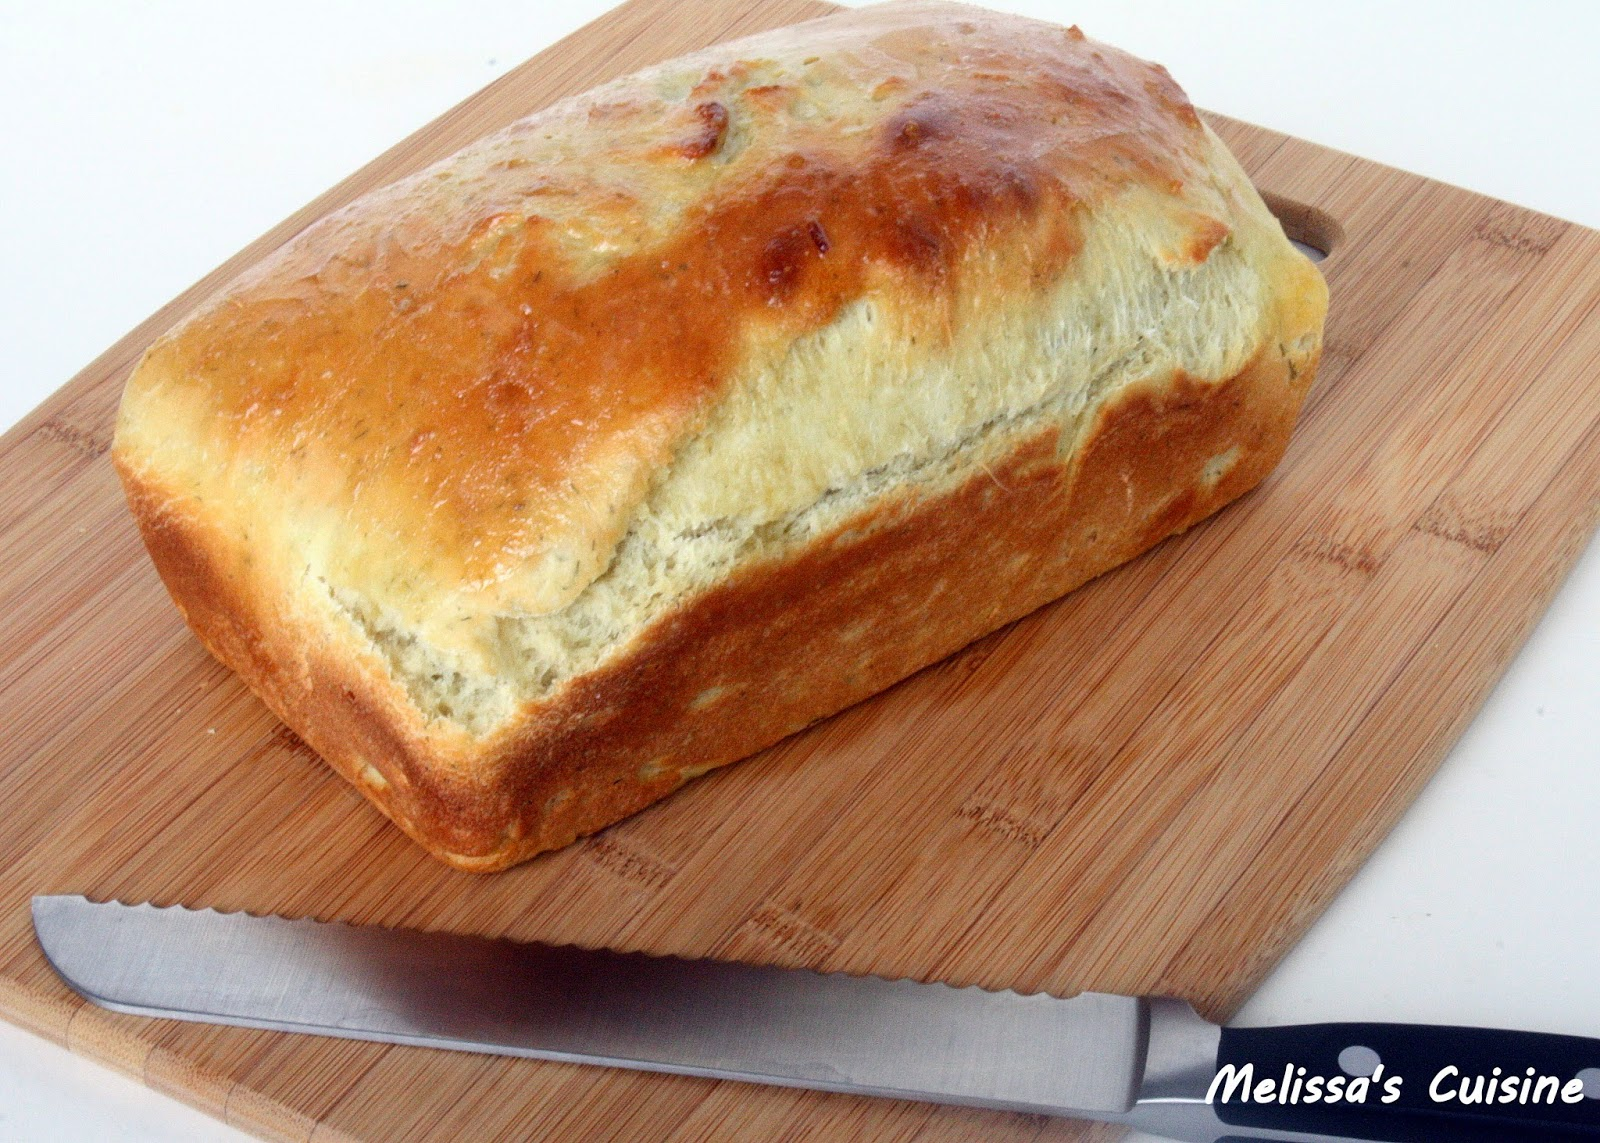 Melissa's Cuisine:  Dill Pickle Bread